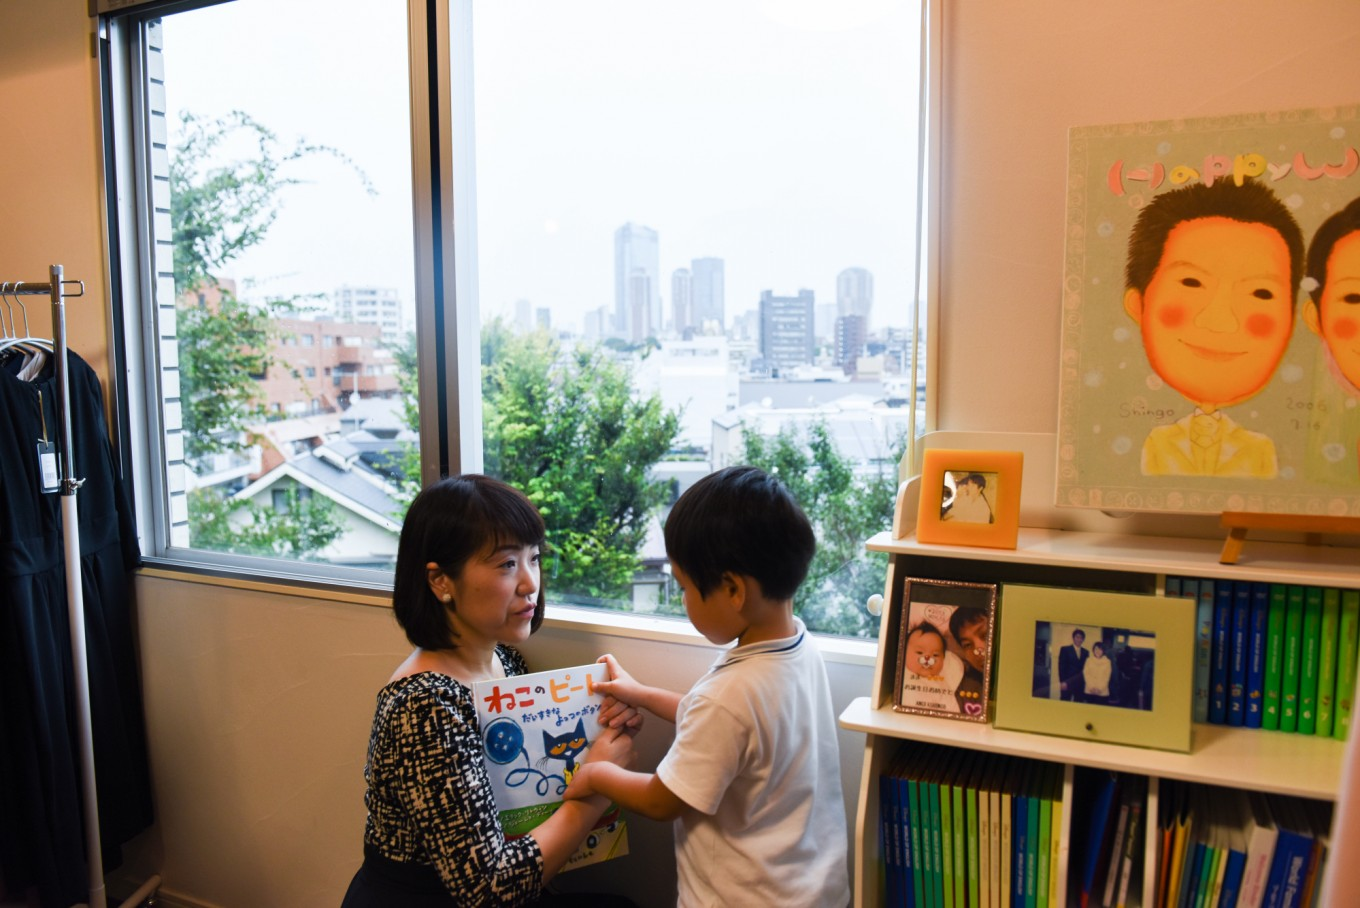 Mothers in Japan face hurdle after hurdle in returning to work